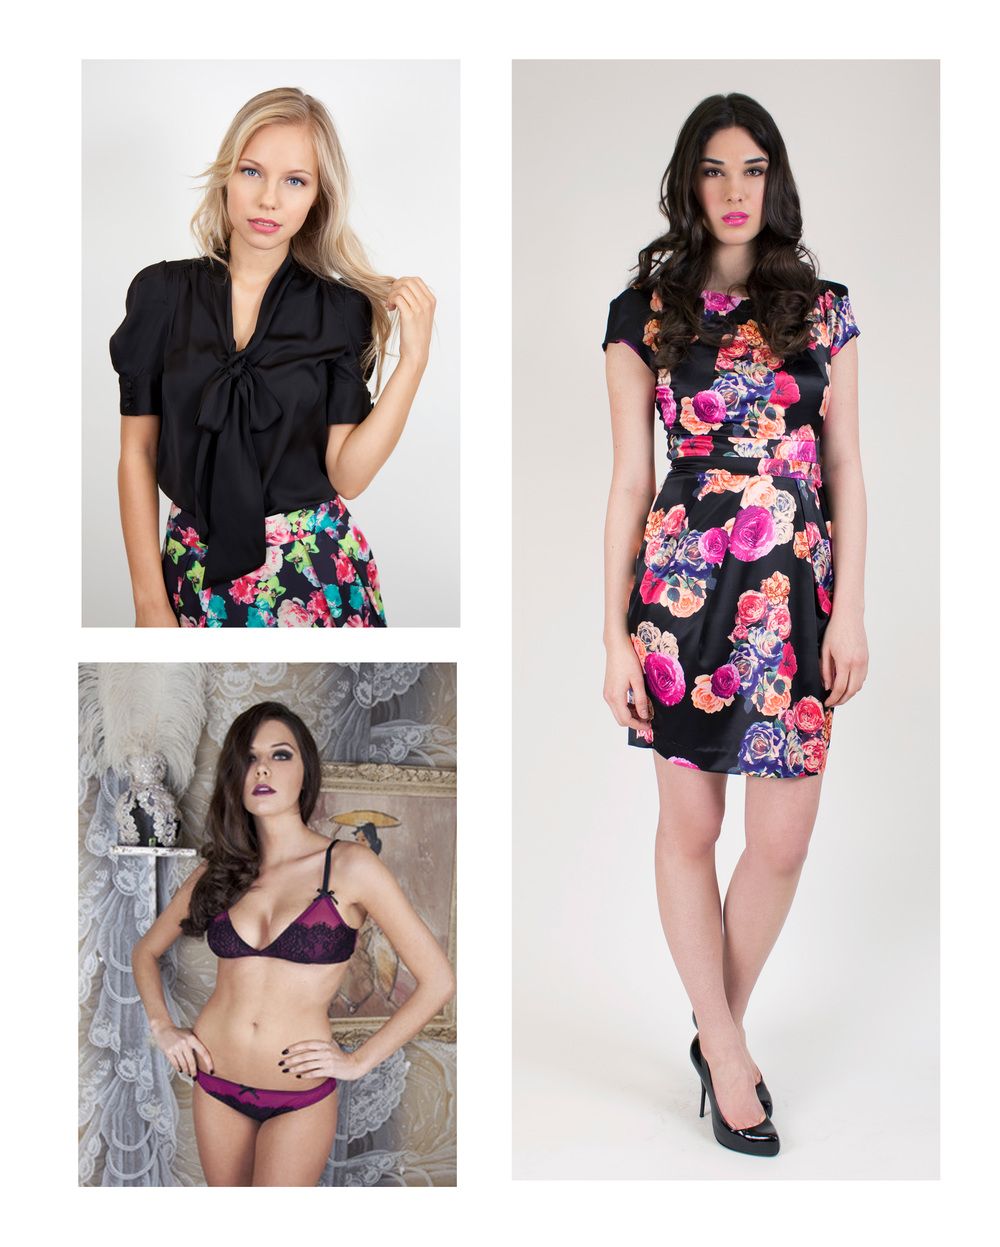 From left to right, bow front blouse by Whistle & Wolf £45, russian floral dress by Whistle & Wolf £55 and Margarita red wine bra by Playful Promises £23